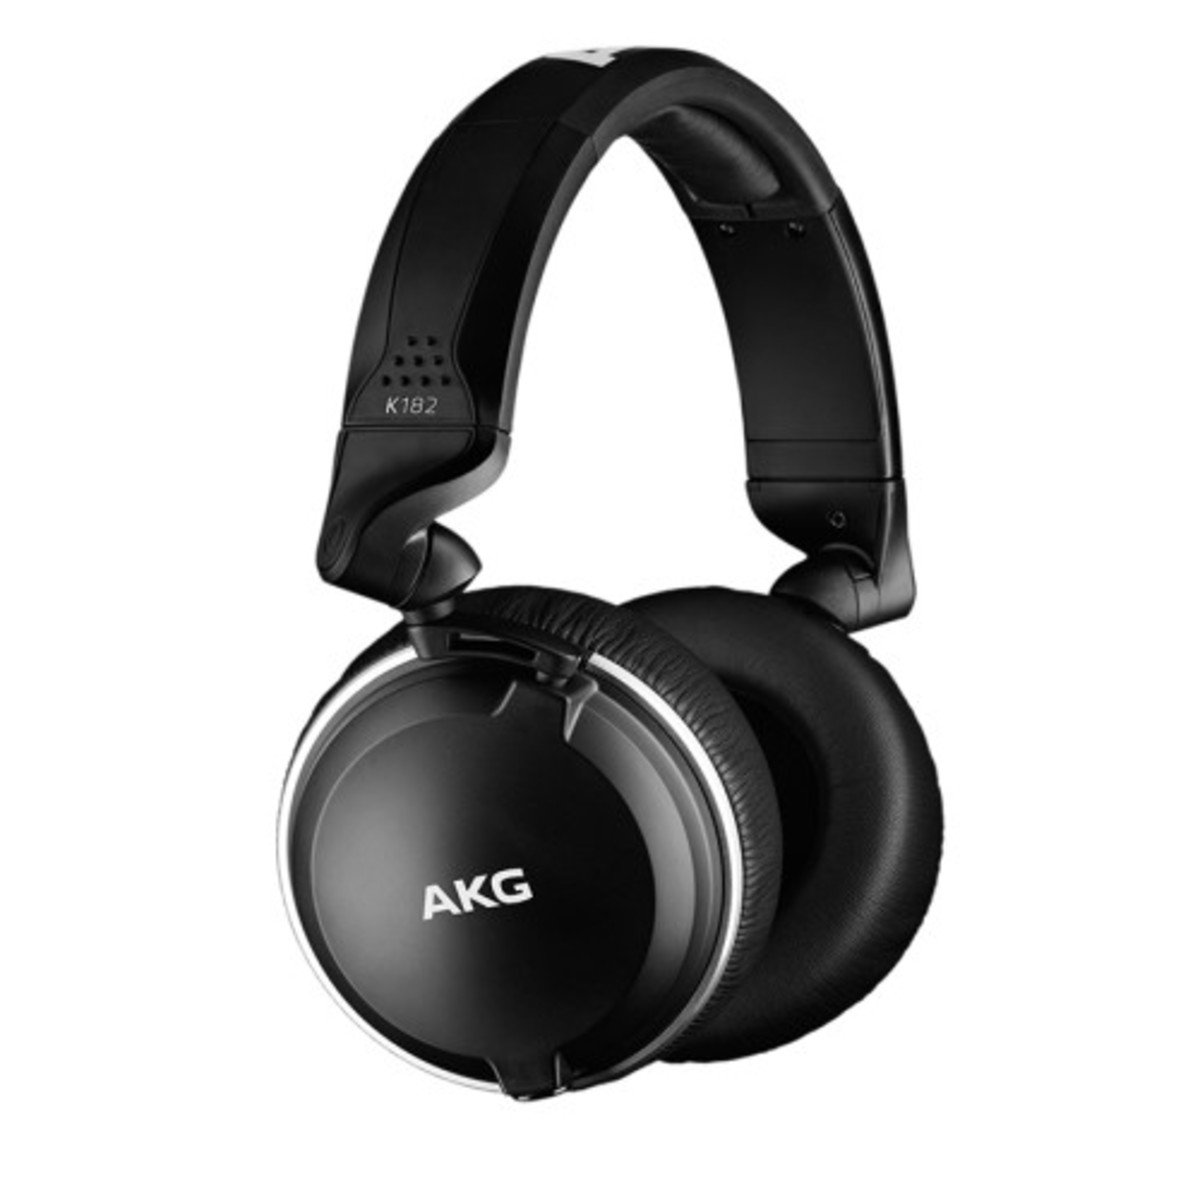 The AKG 182